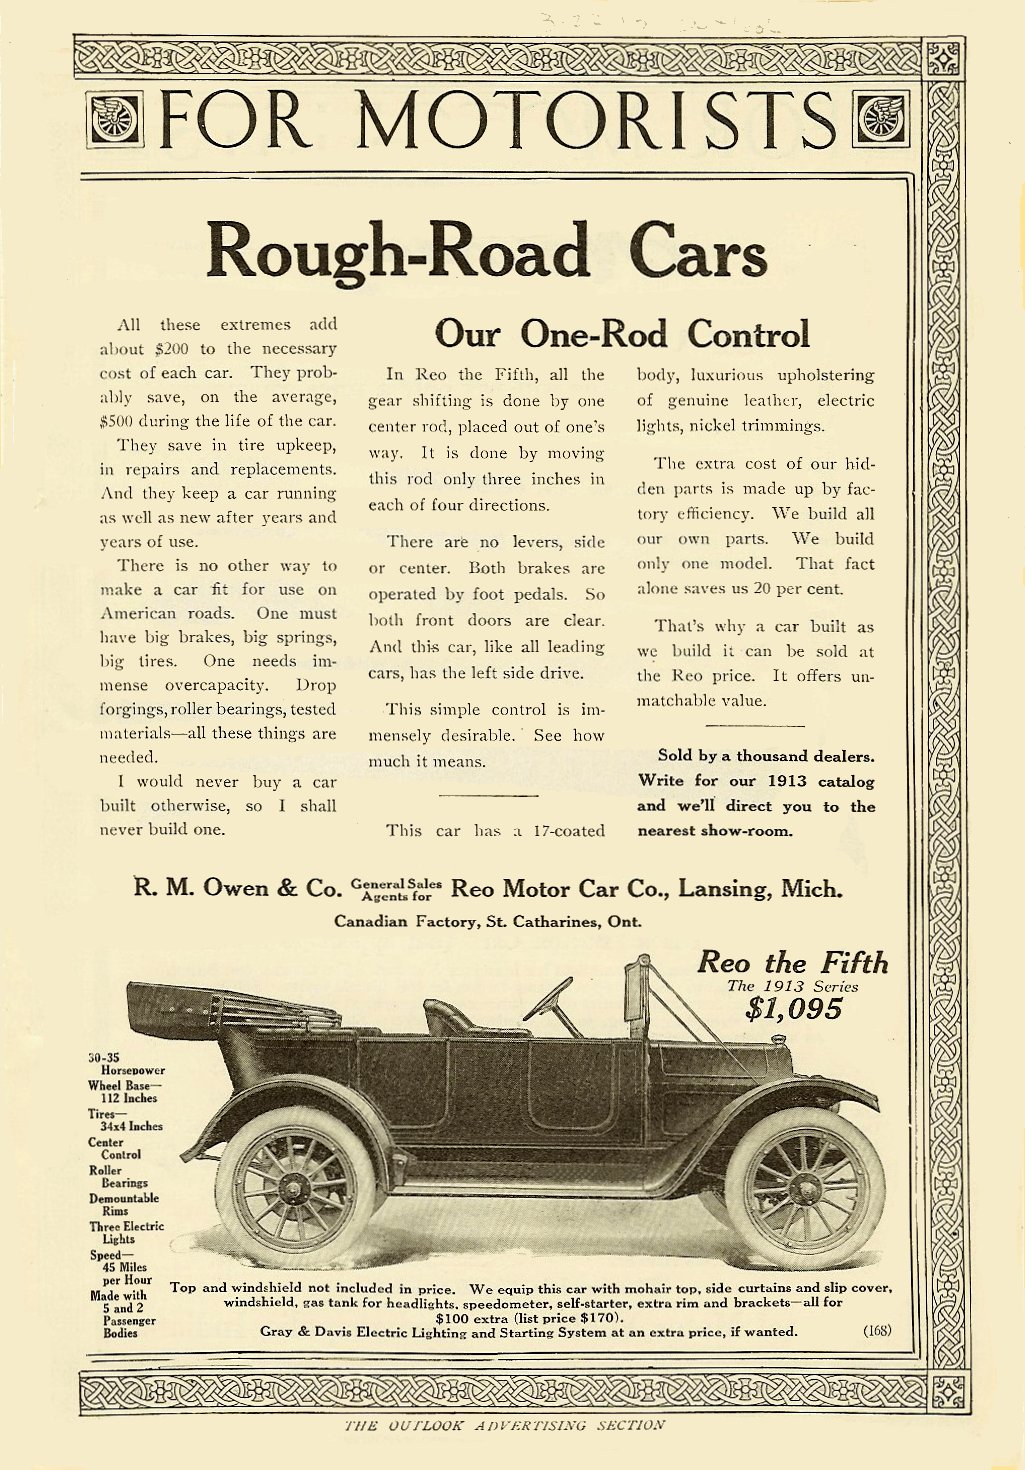 """1913 Reo Rough-Road Cars Reo the Fifth $1,095 $1,095 in 1913 = $20,925 in 2005 """"For Conservative People"""" The Outlook Advertising Section FOR MOTORISTS March 22, 1913 6.75″x9.75″"""